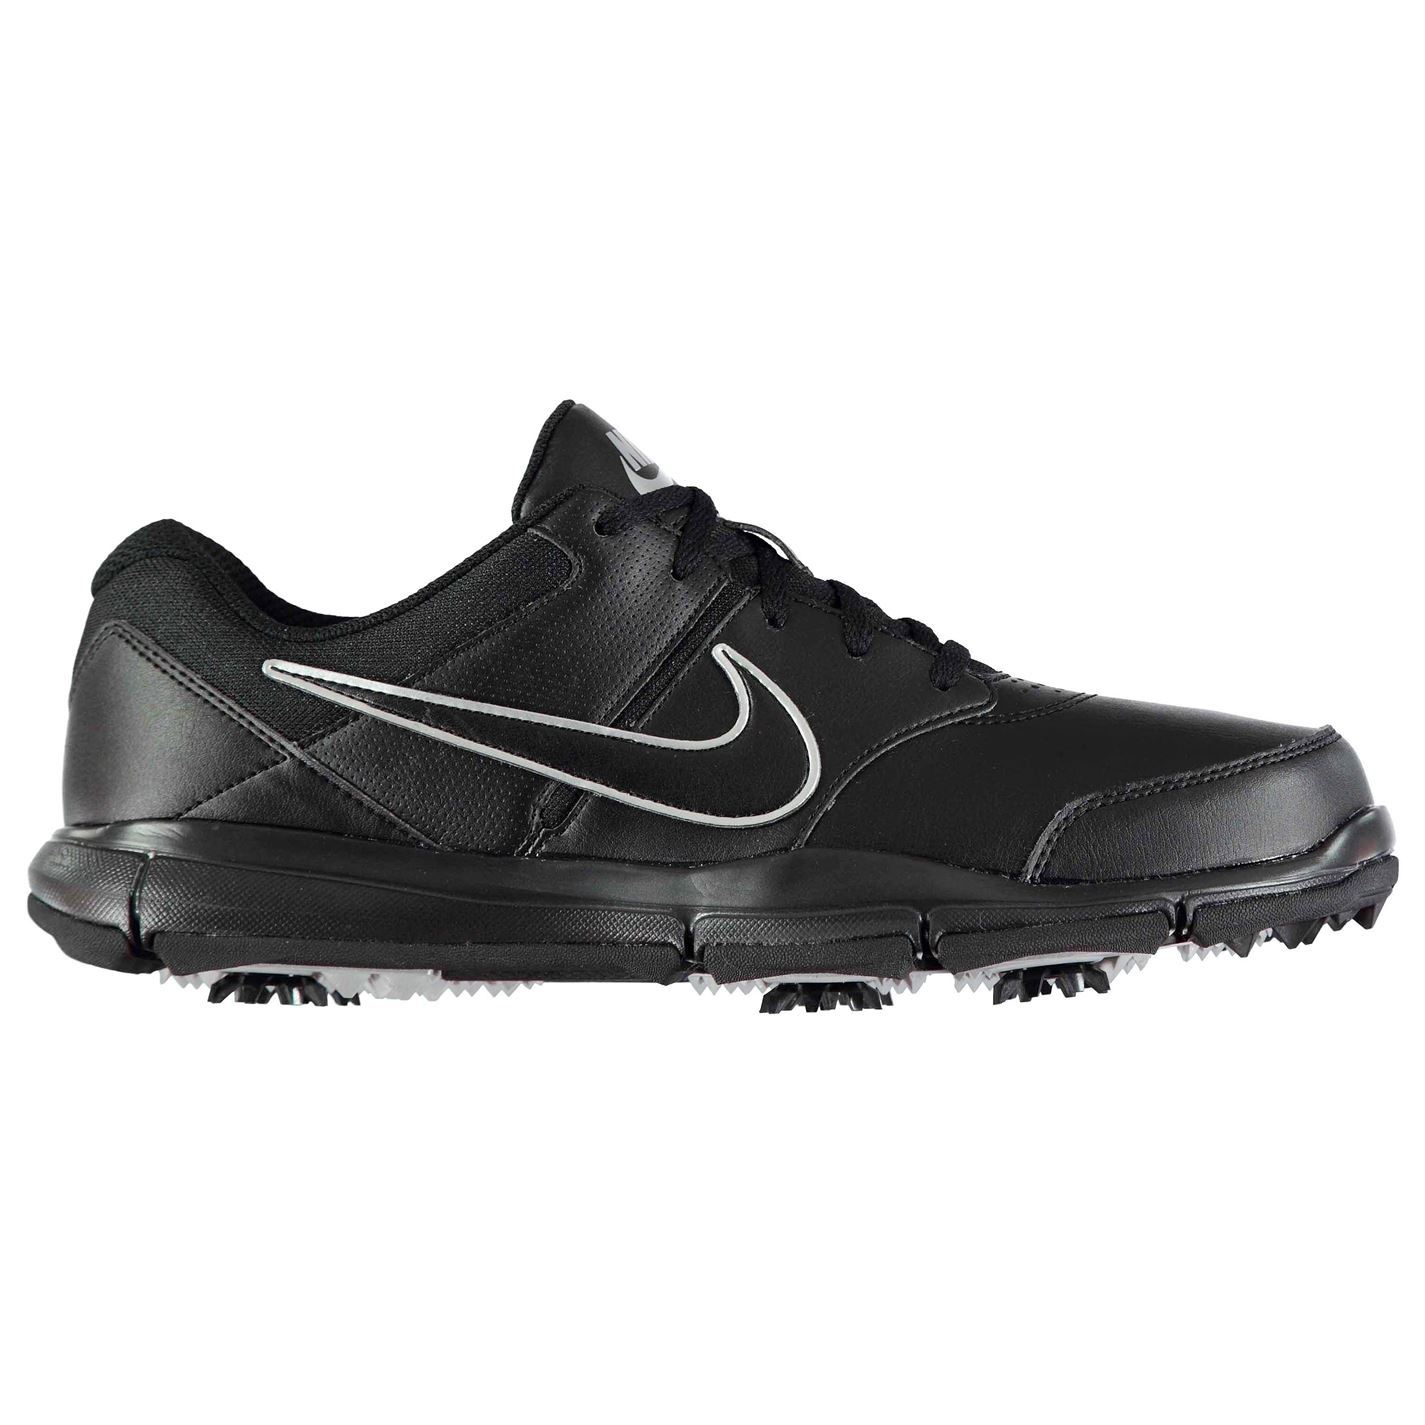 Nike-Durasport-4-Spiked-Golf-Shoes-Mens-Spikes-Footwear thumbnail 10